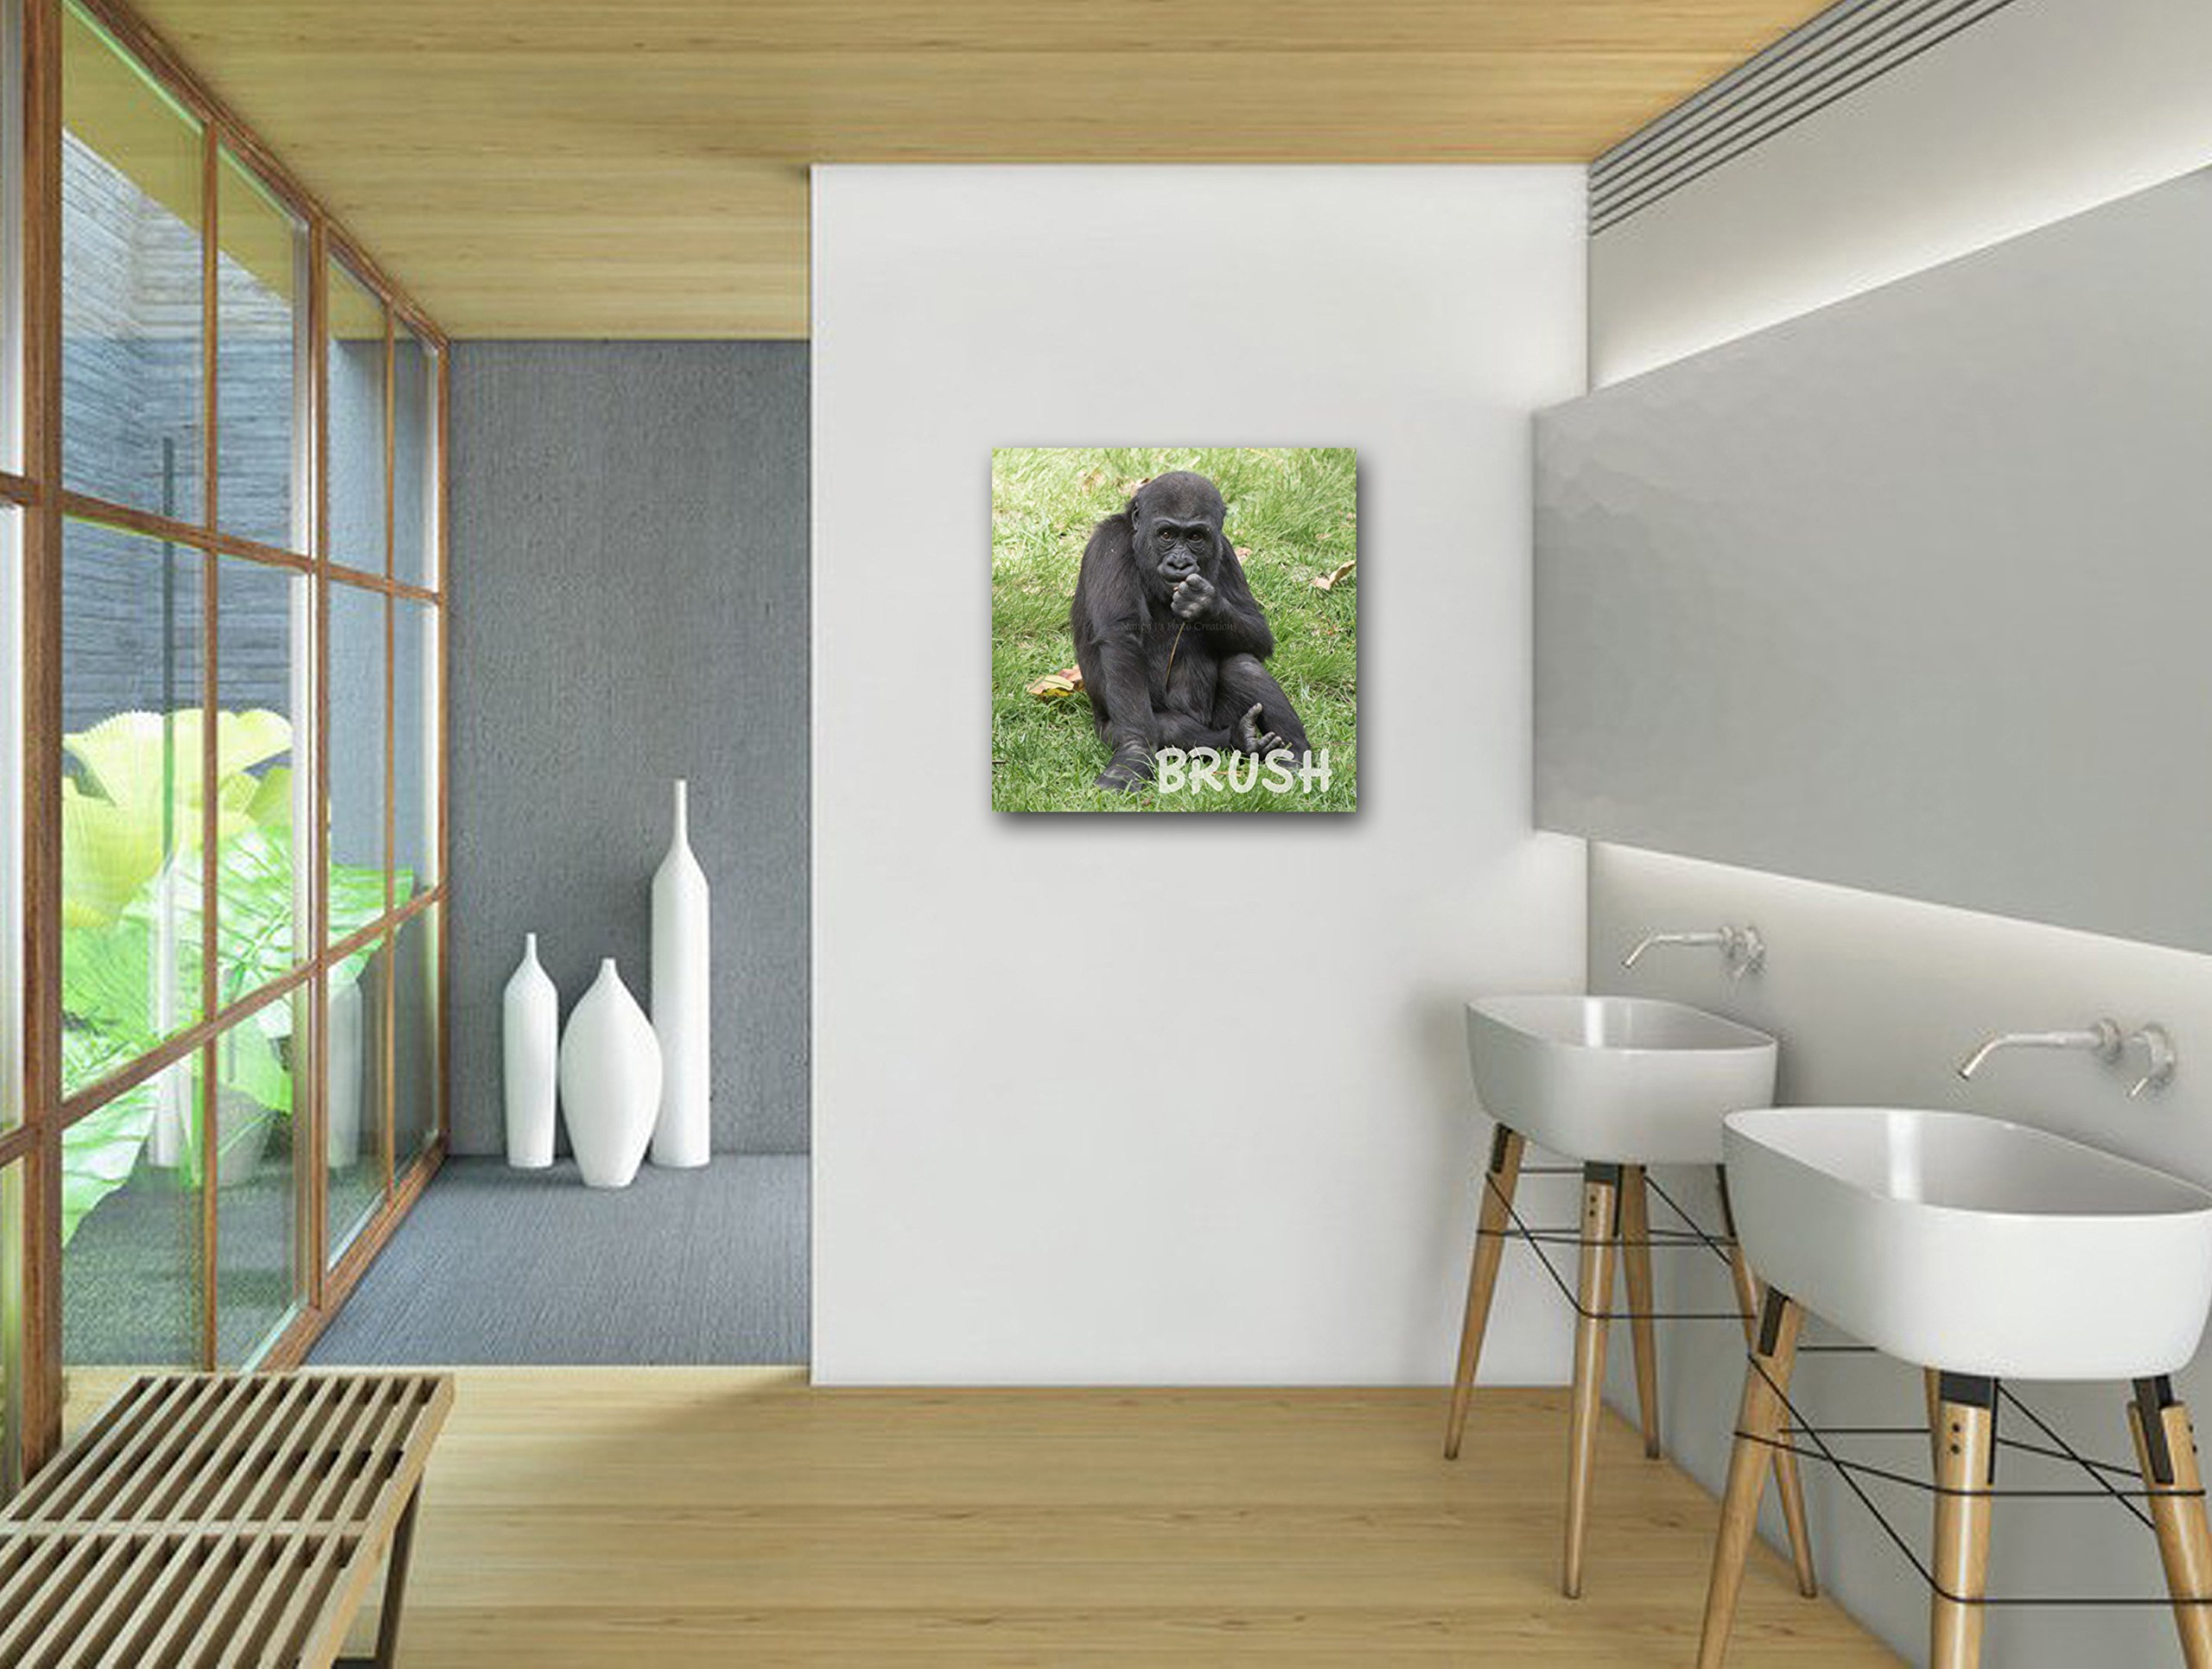 Bathroom Art Set of 3 Baby Animal Prints on CANVAS Cute Gorilla Photo Brush Your Teeth Funny Children's Wall Decor New Parent Photography Gift Ready to Hang 10x10 12x12 16x16 20x20 24x24